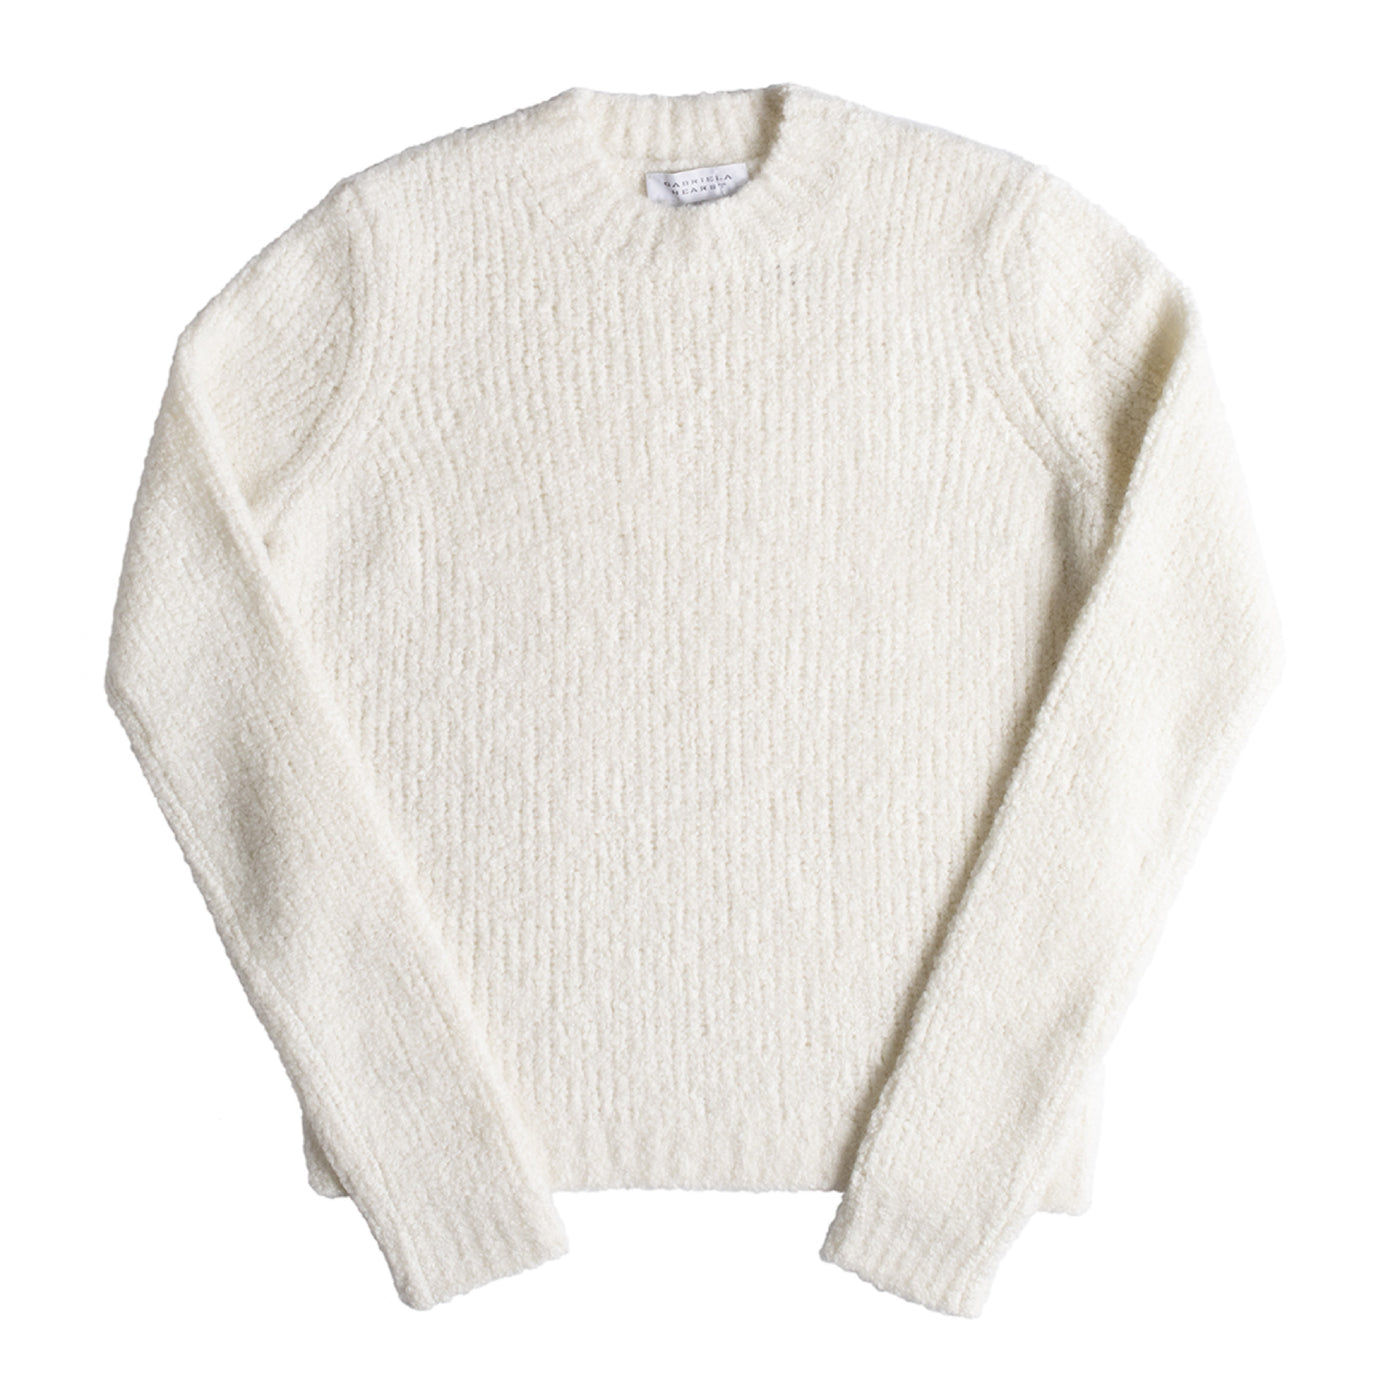 Load image into Gallery viewer, GABRIELA HEARST PHILIPPE CASHMERE BOUCLE SWEATER NEUTRAL